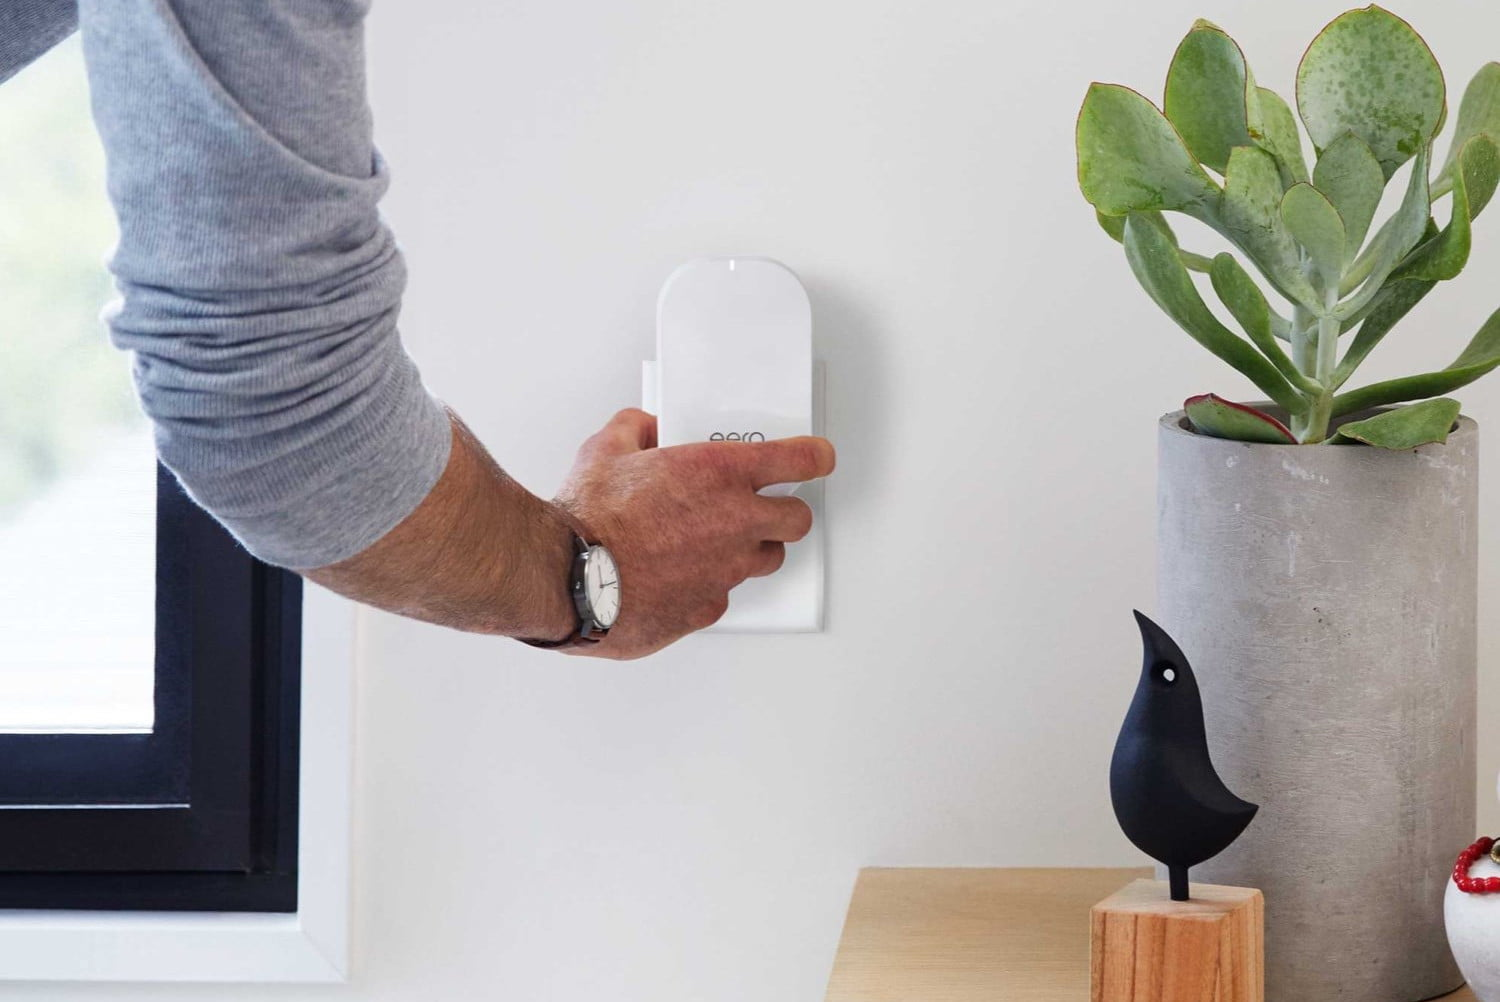 amazon drops prices for eero home mesh wi fi systems wifi system  1 pro beacon 4